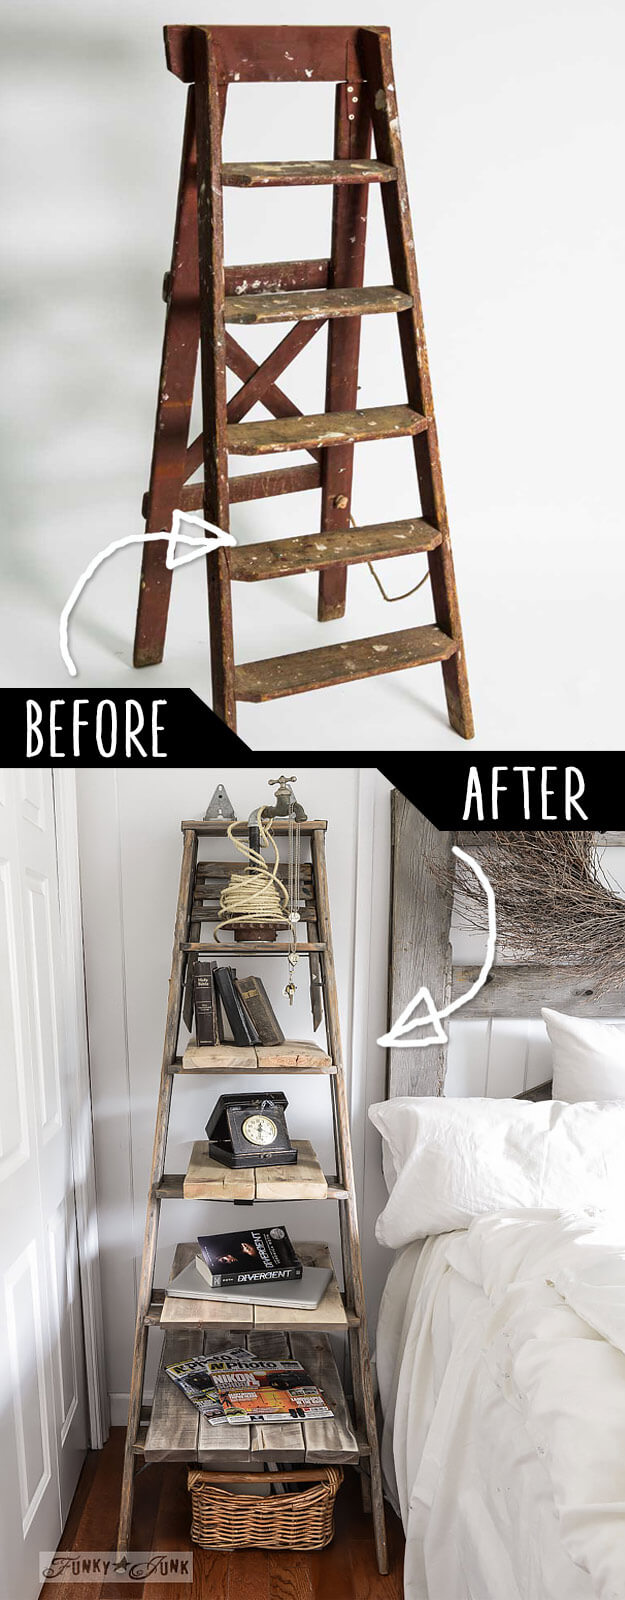 34 Best DIY Vintage Decor Ideas and Projects for 2018